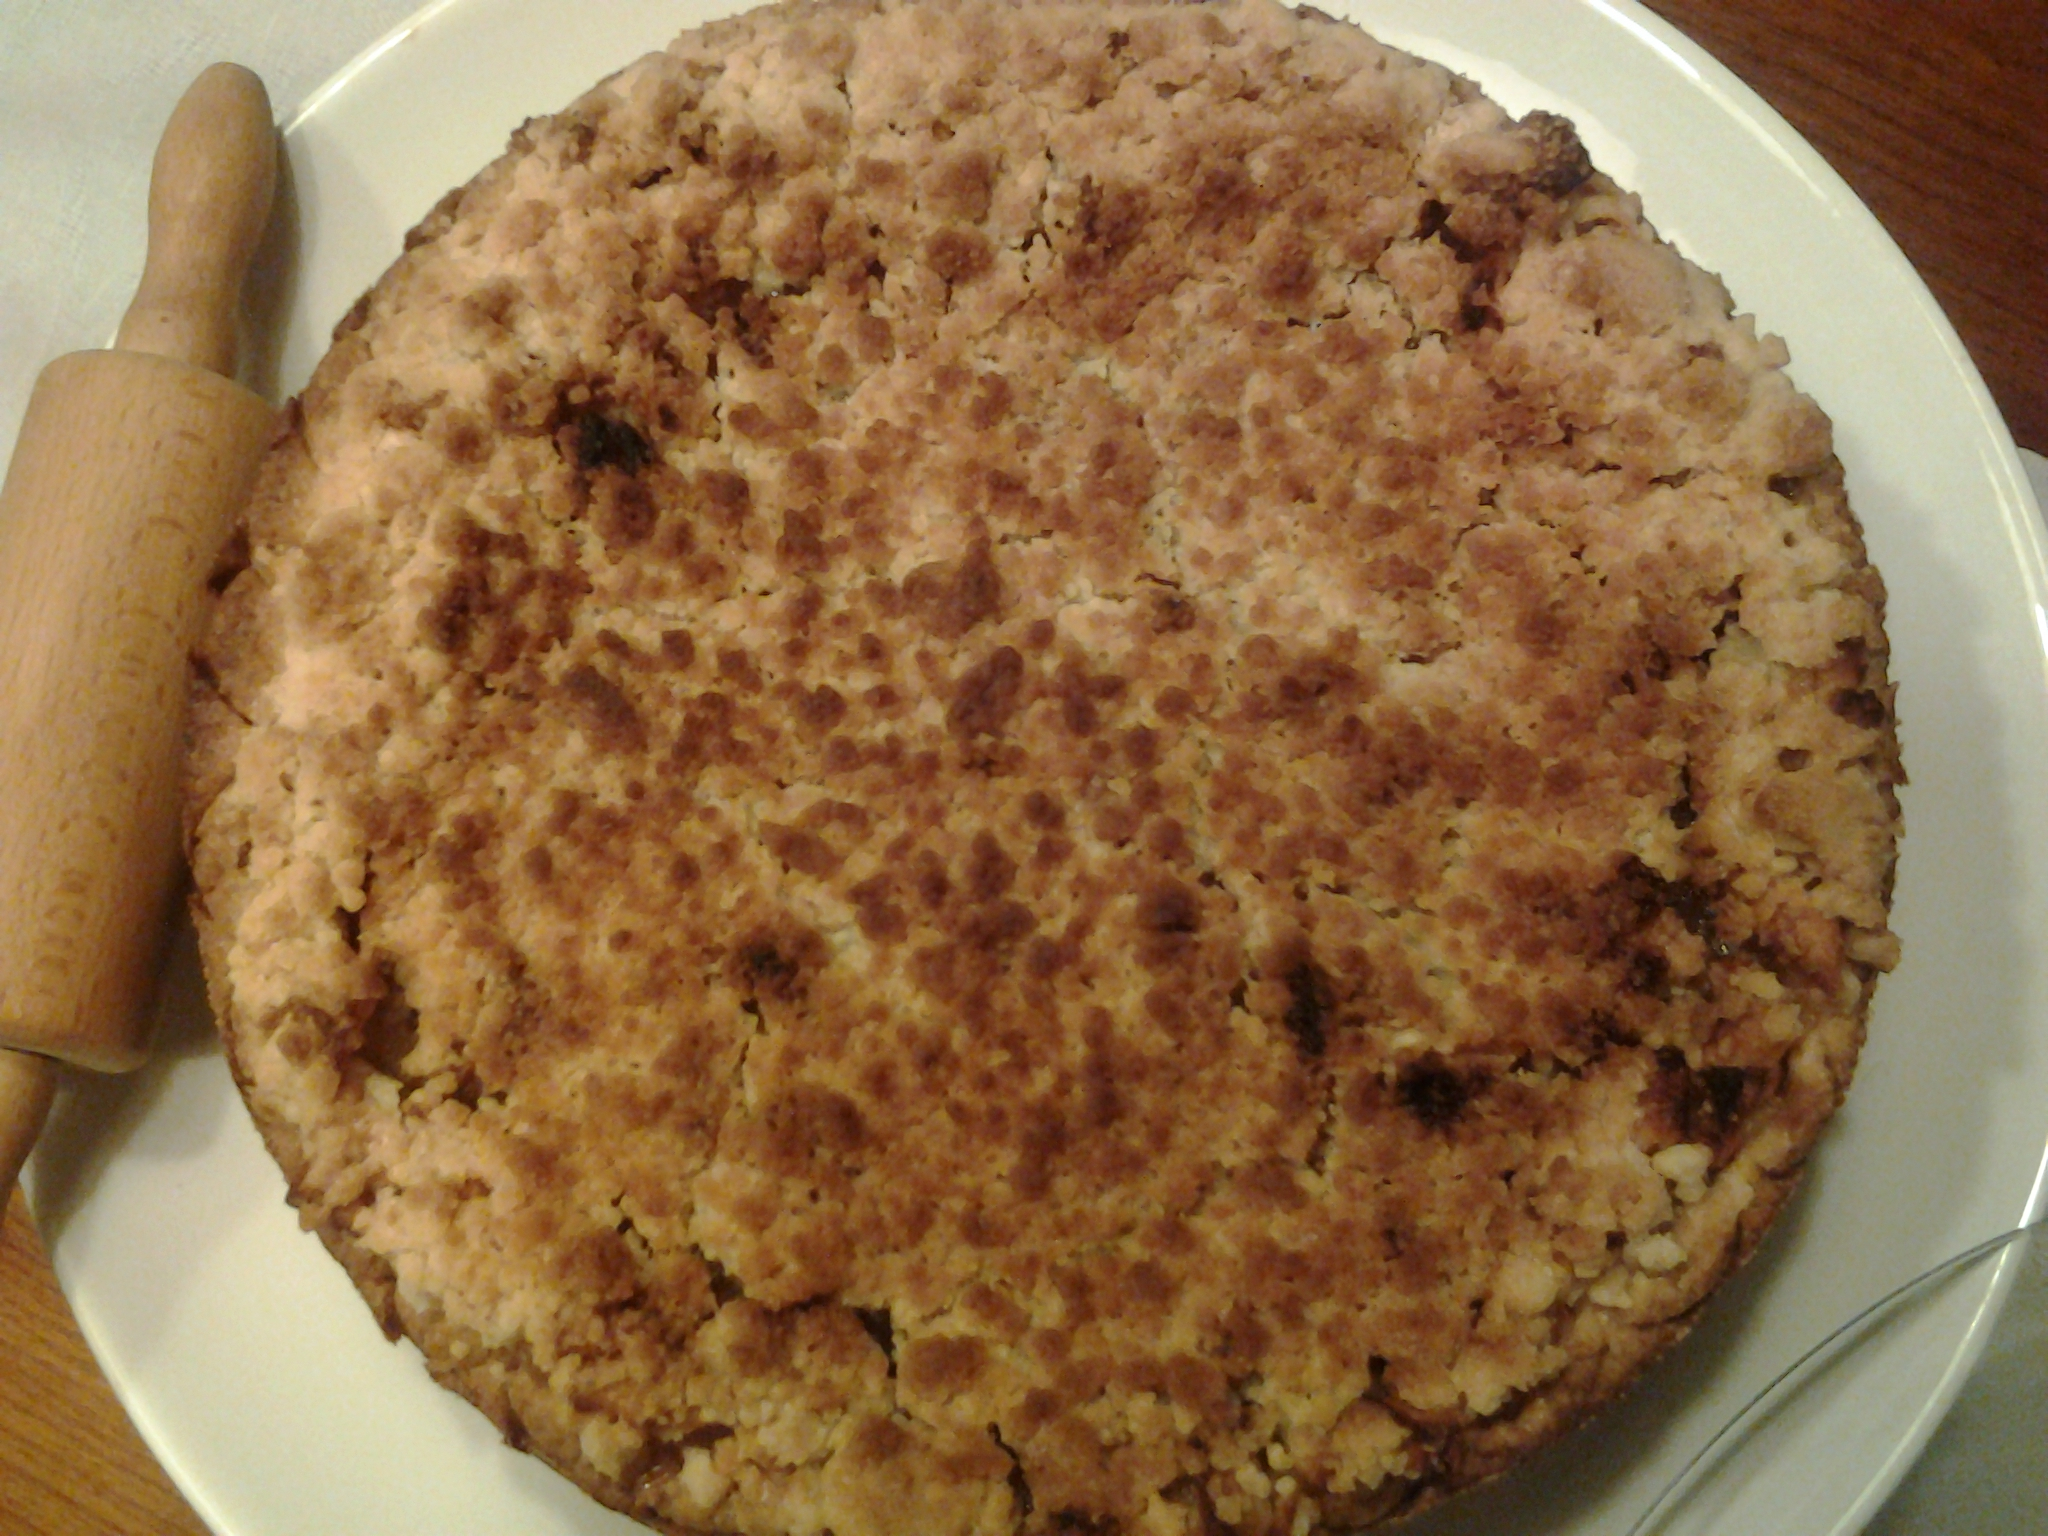 Crumble apple pie